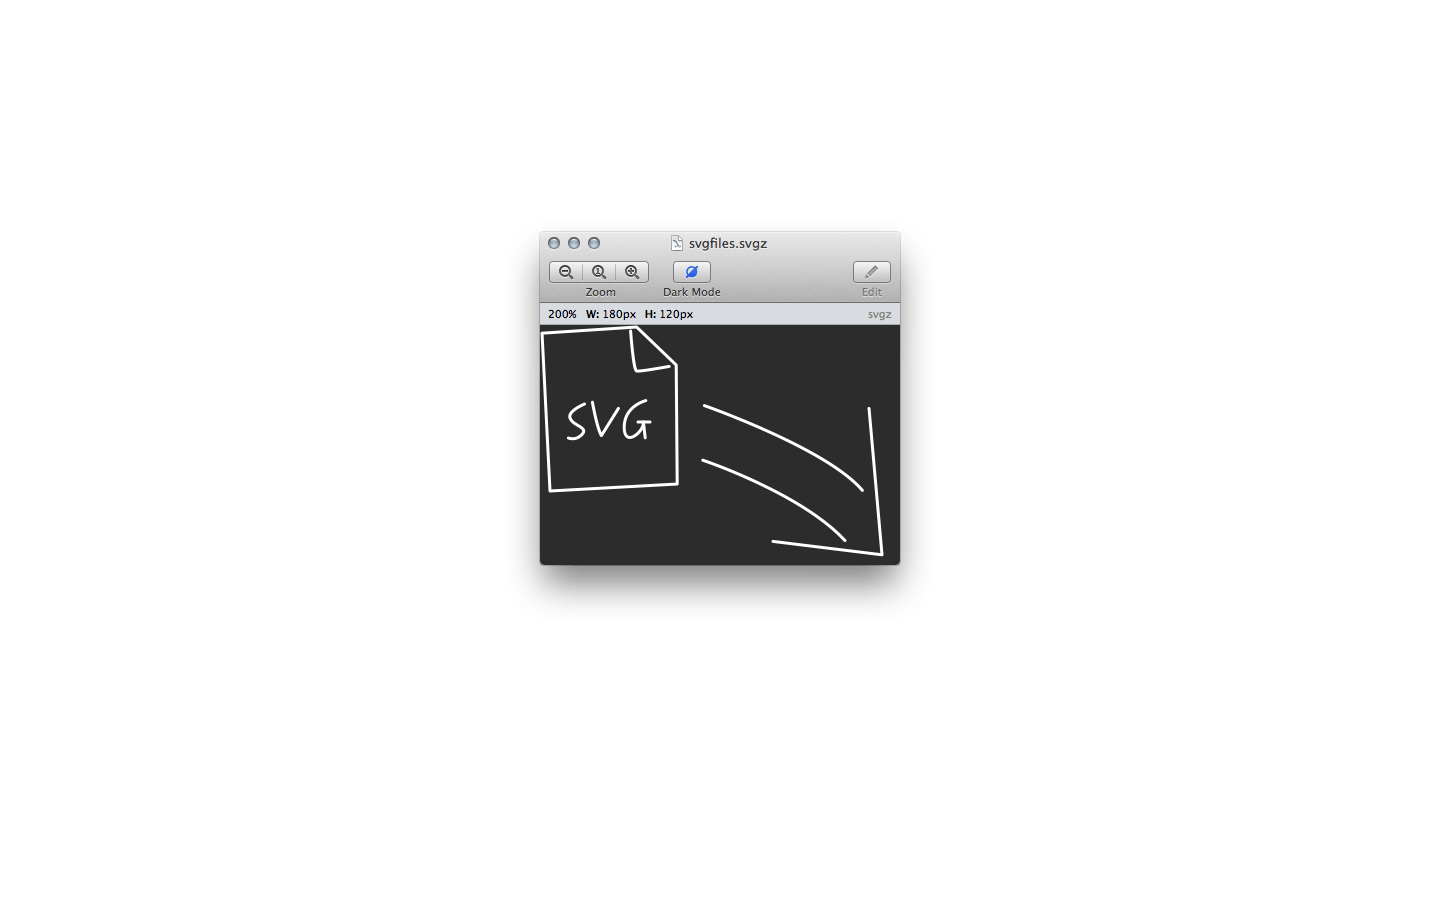 Gapplin - SVG Viewer for macOS